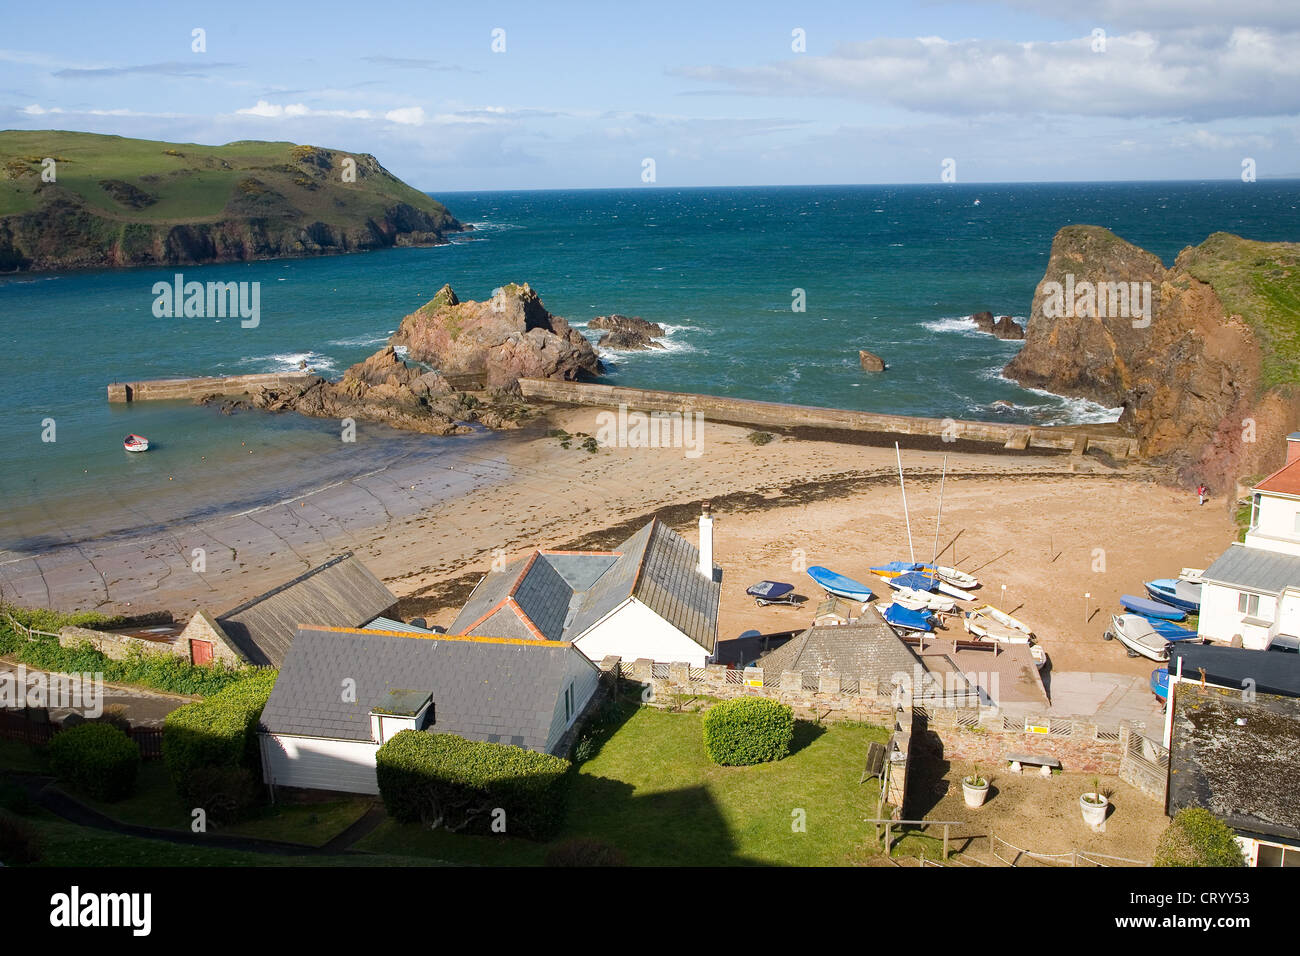 Outer Hope Cove in the South Hams, South Devon - Stock Image